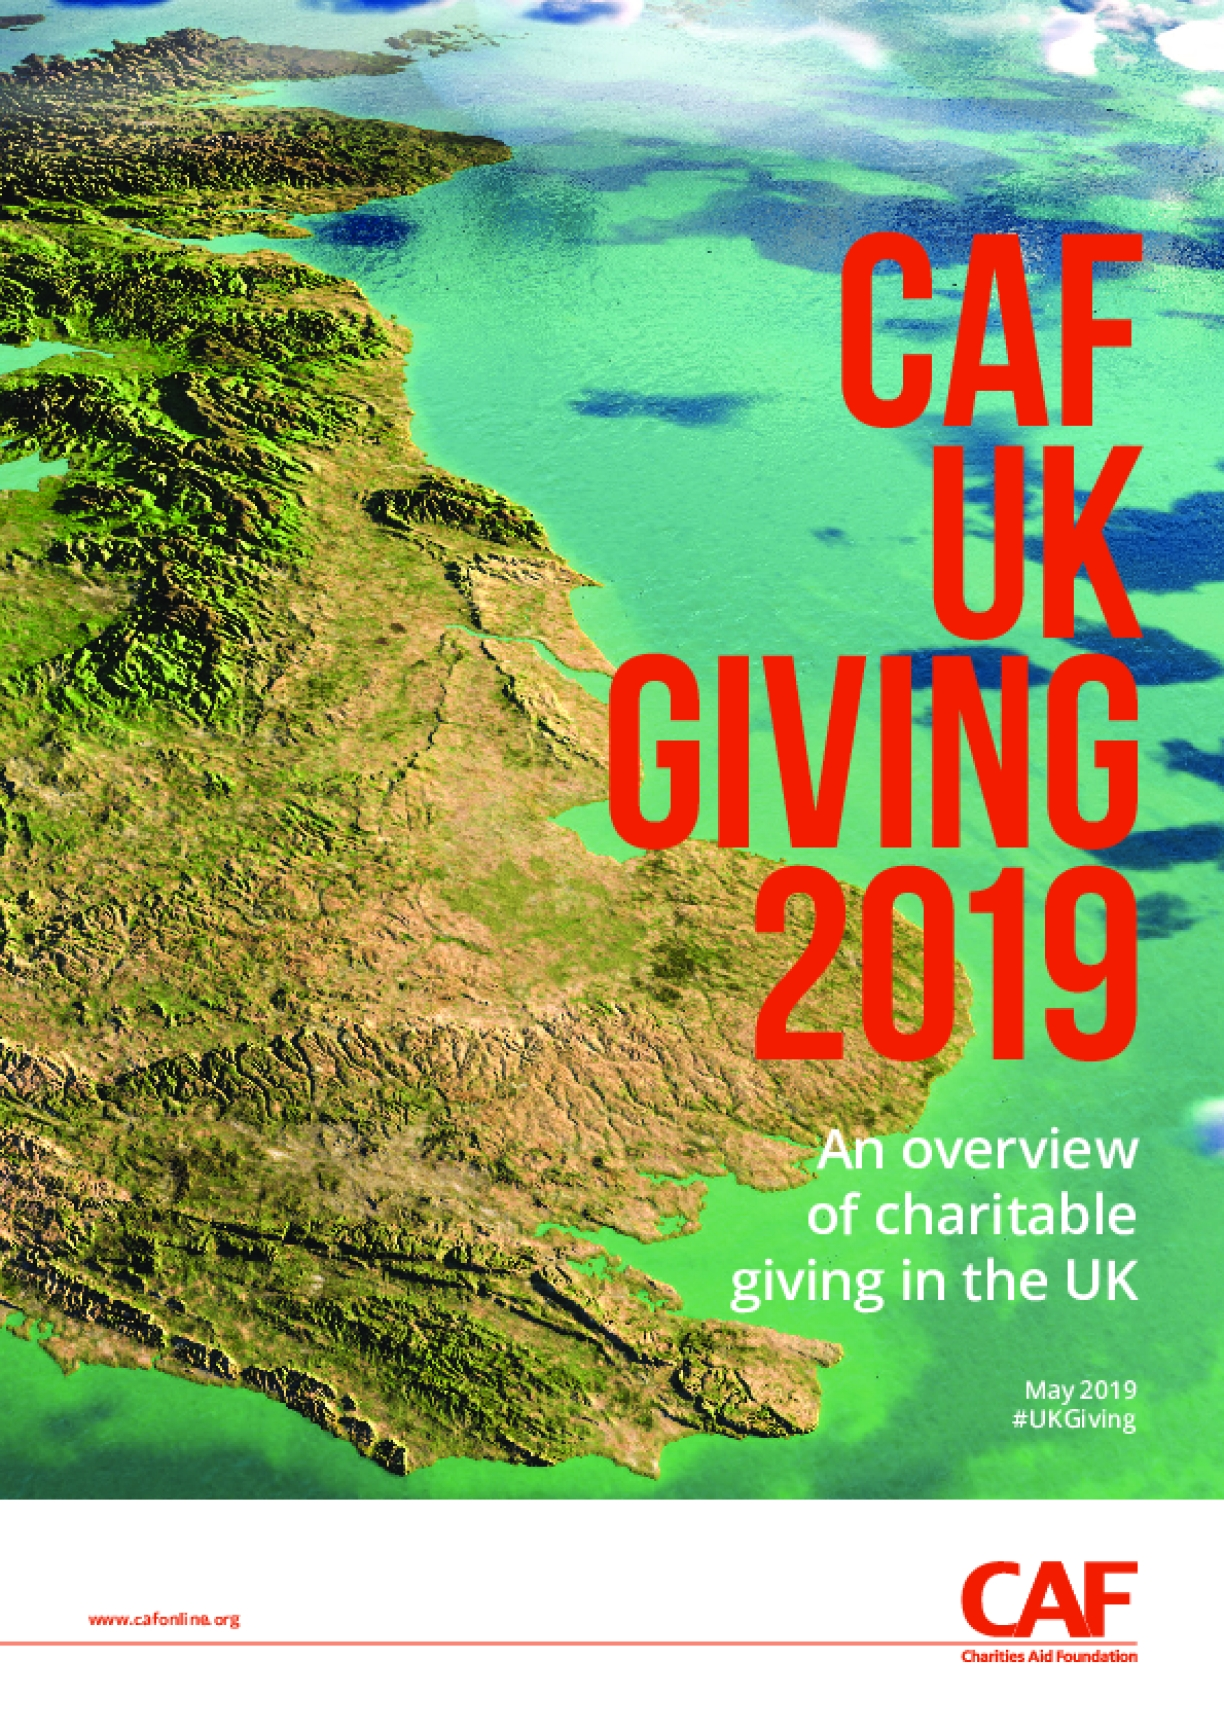 UK Giving 2019: An Overview of Charitable Giving in the UK